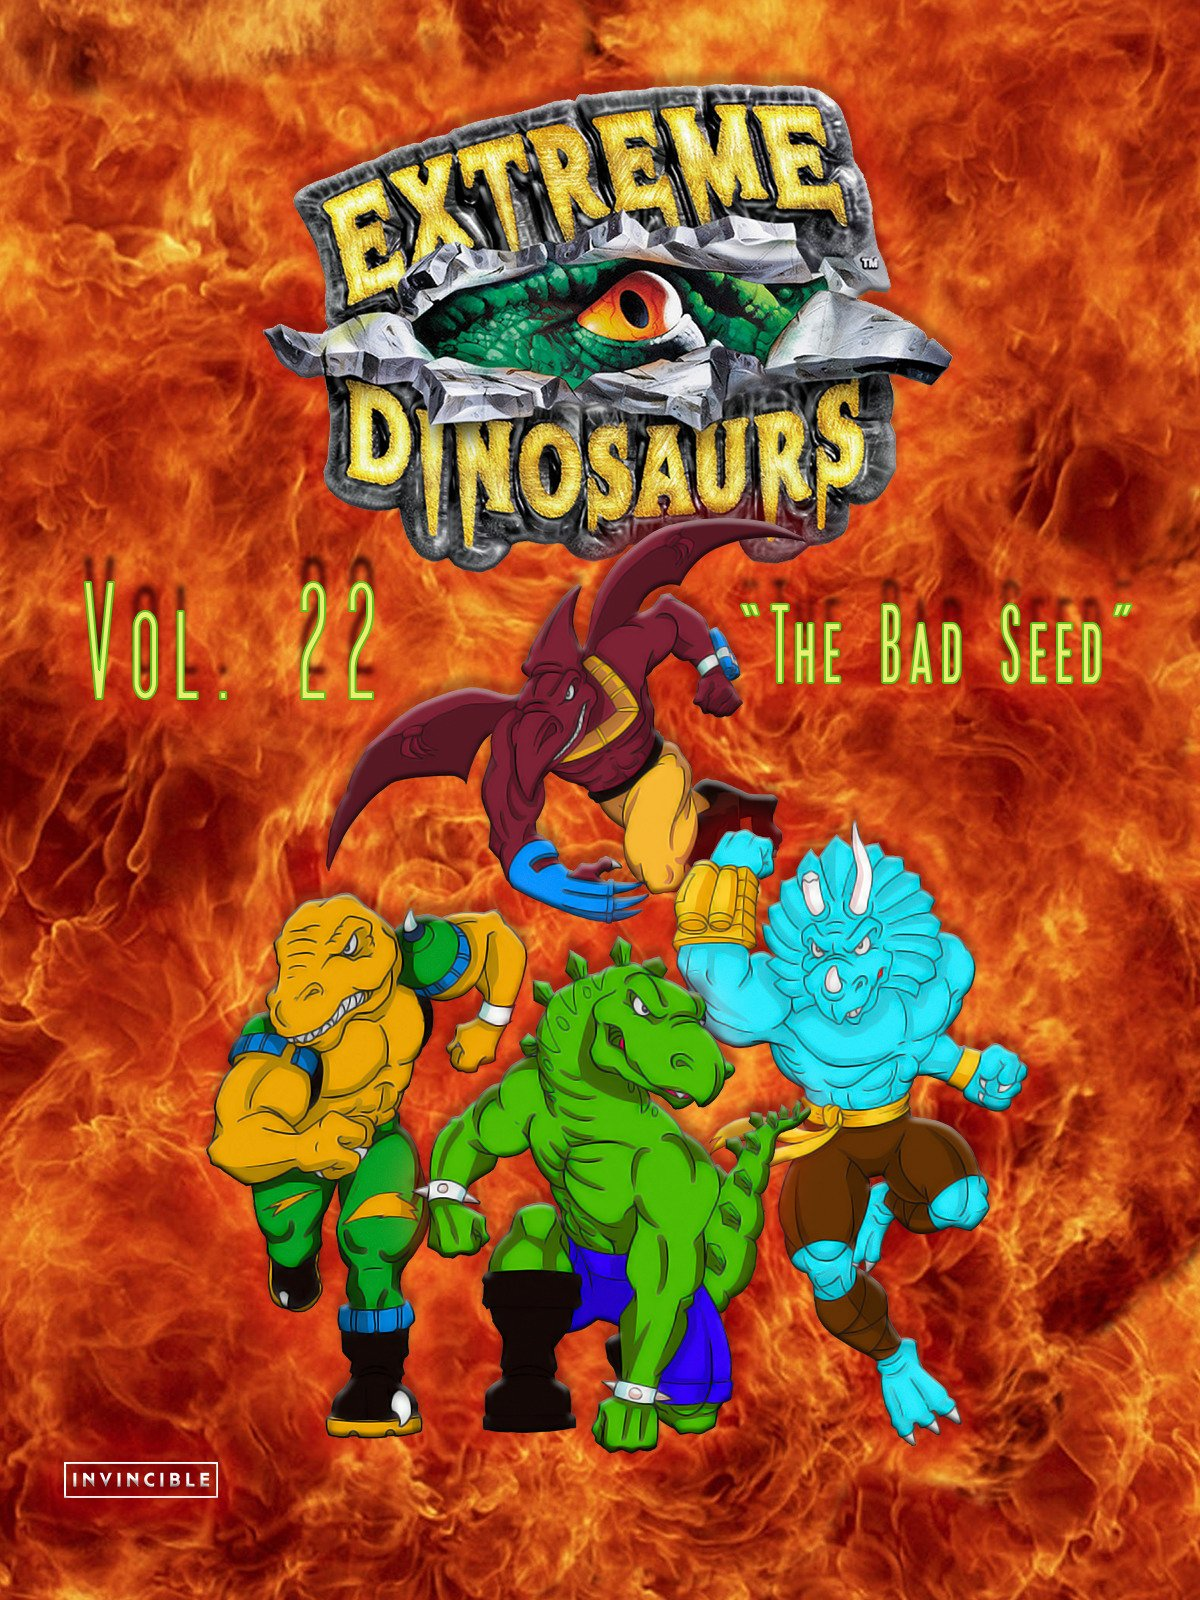 Extreme Dinosaurs Vol. 22The Bad Seed